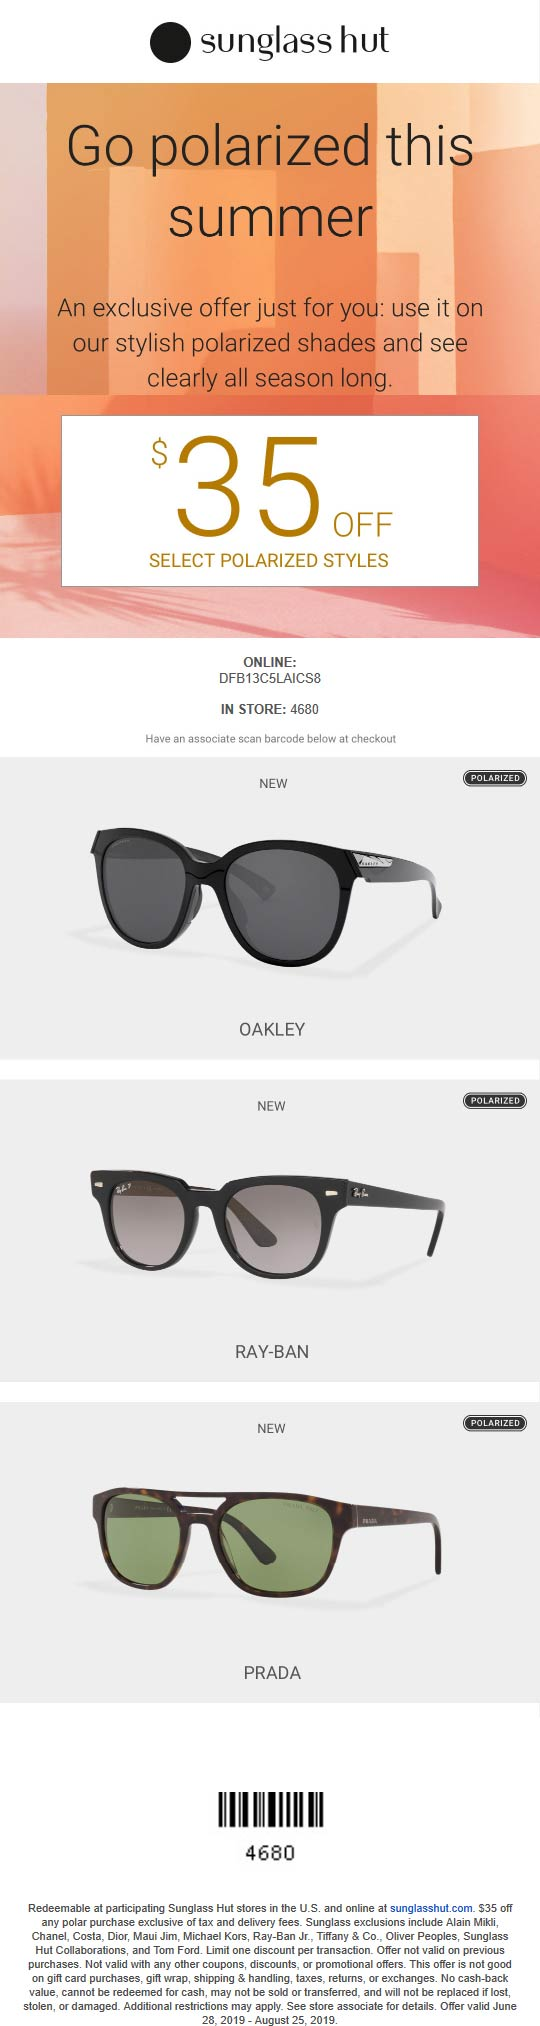 sunglass hut coupon code 2019